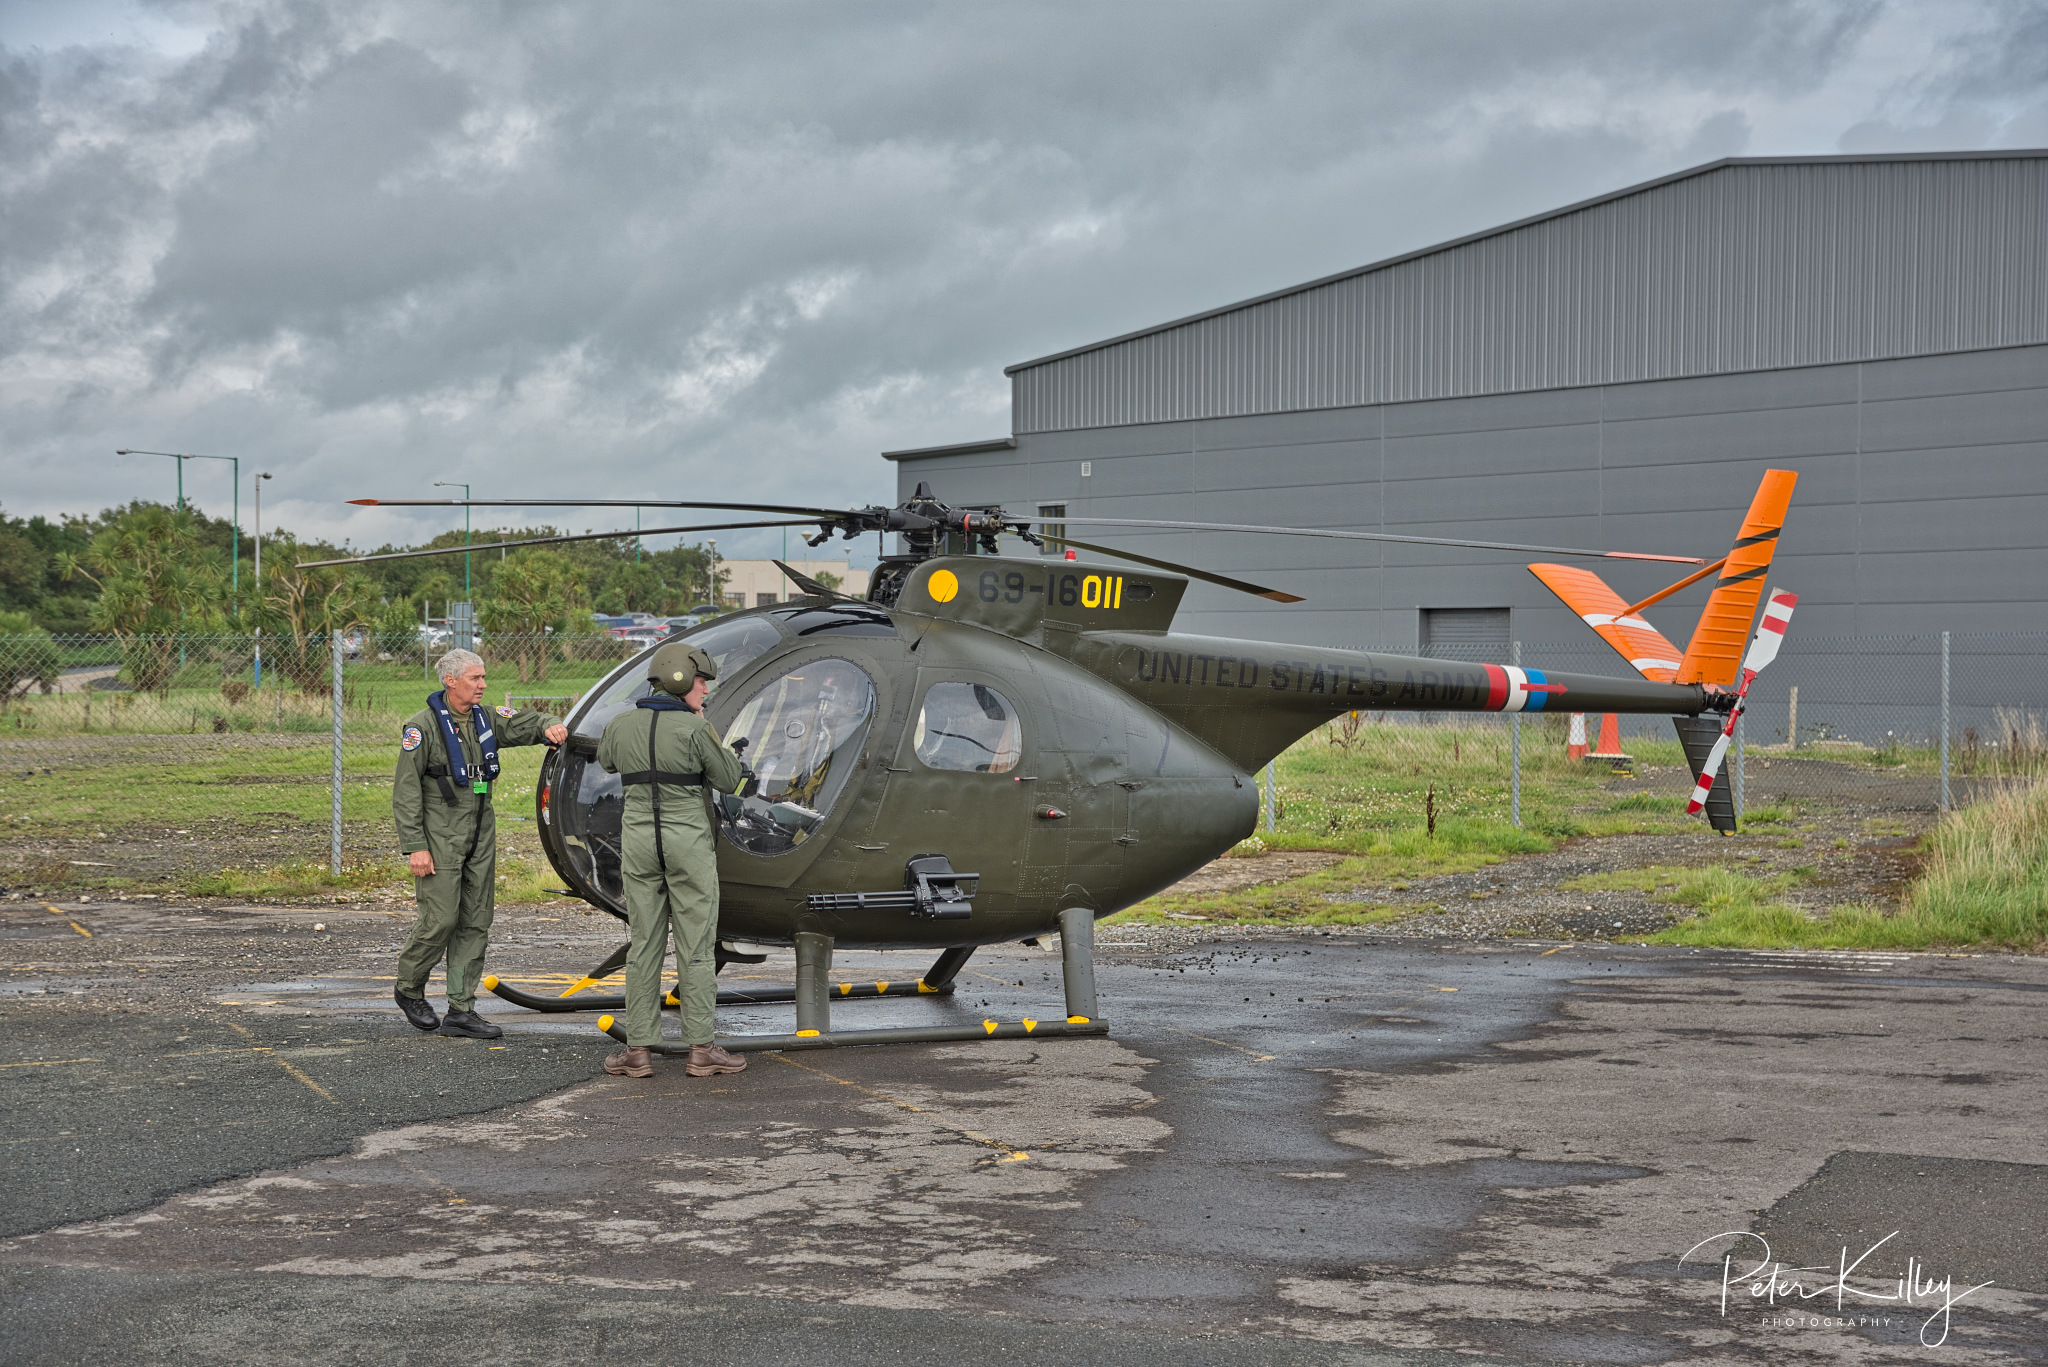 A former Vietnam Helicopter at Ronaldsway Airport © Peter Killey - www.manxscenes.com